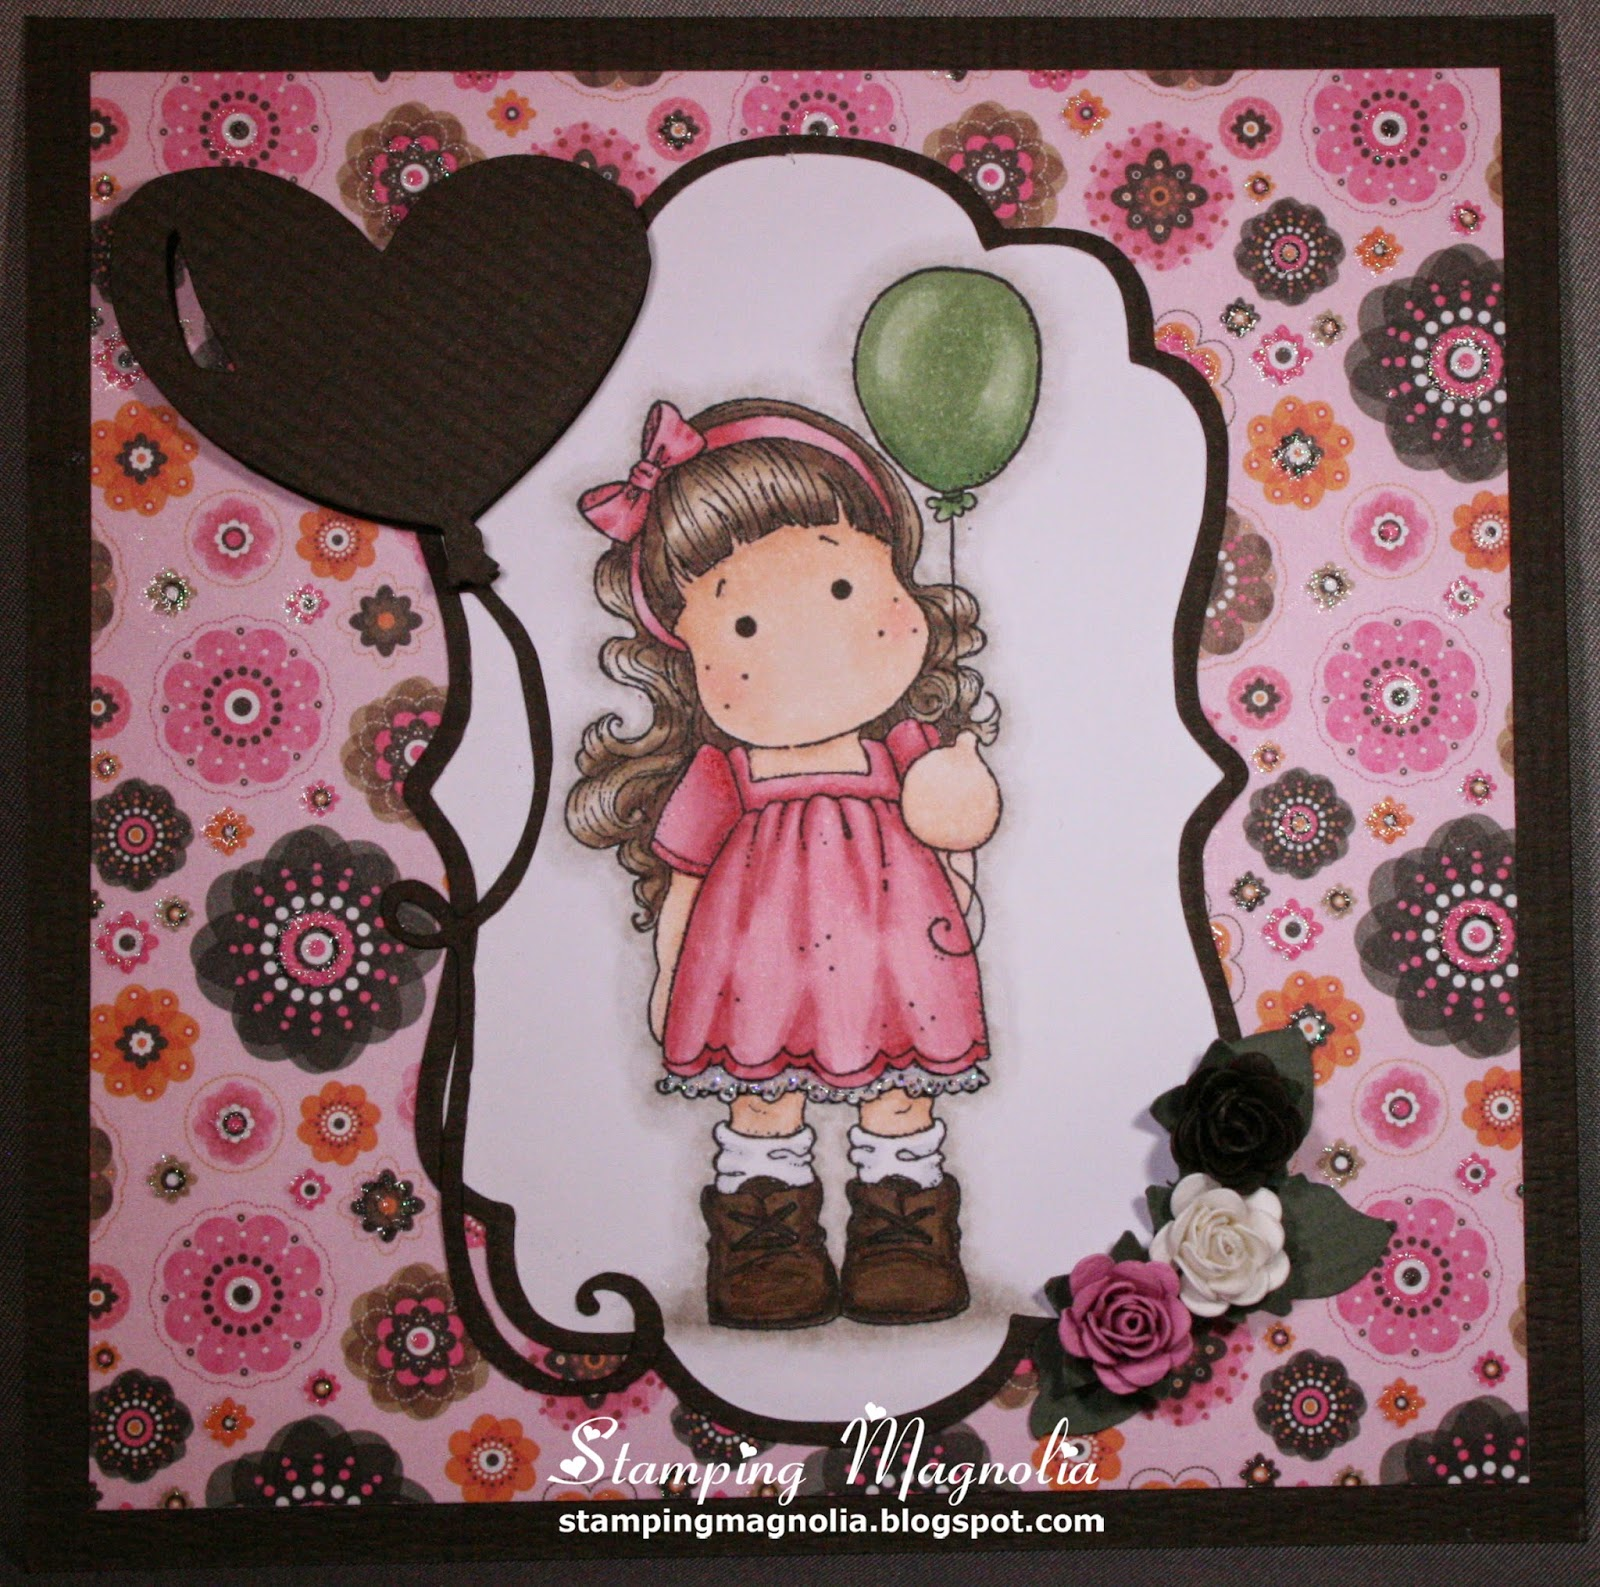 Coloring Magnolia Stamp You Are So Special Collection - Tilda with Balloon